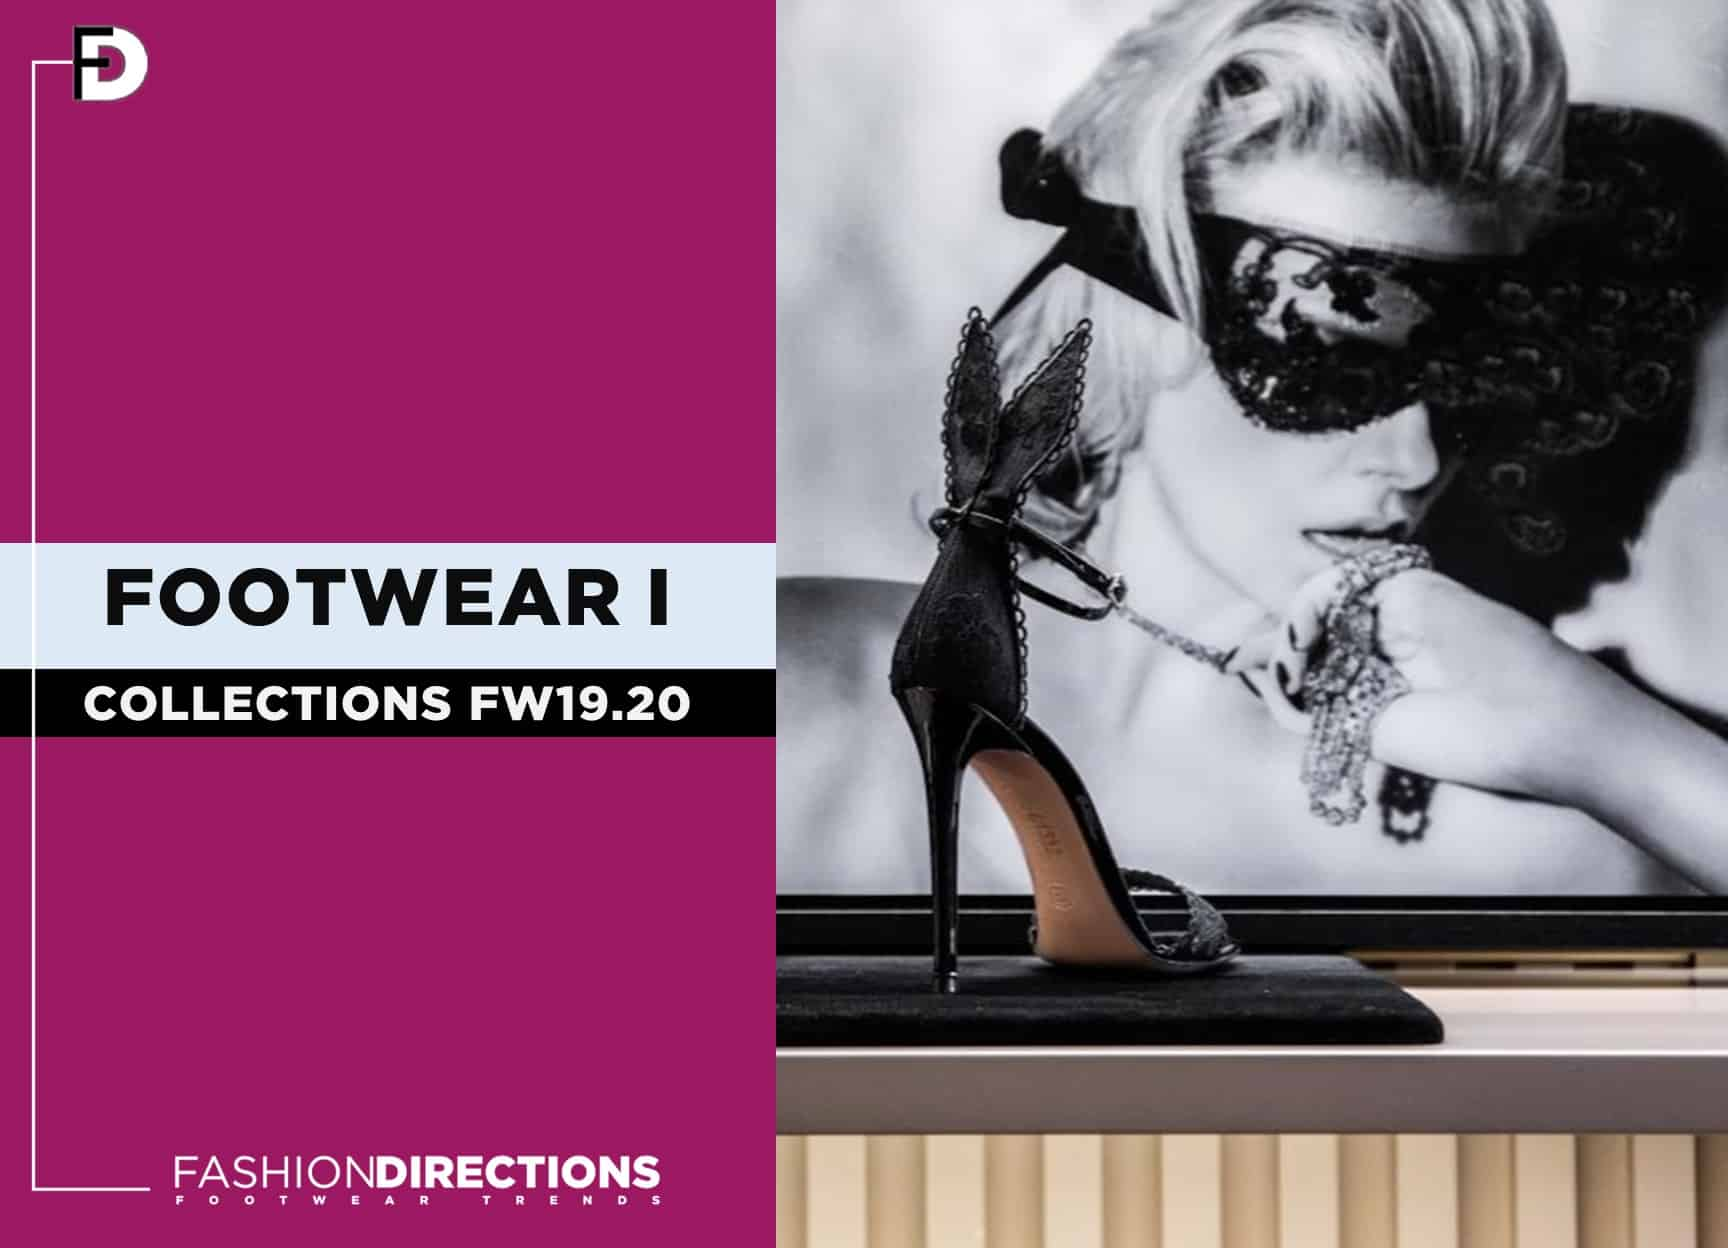 1. Footwear Collections FW19.20